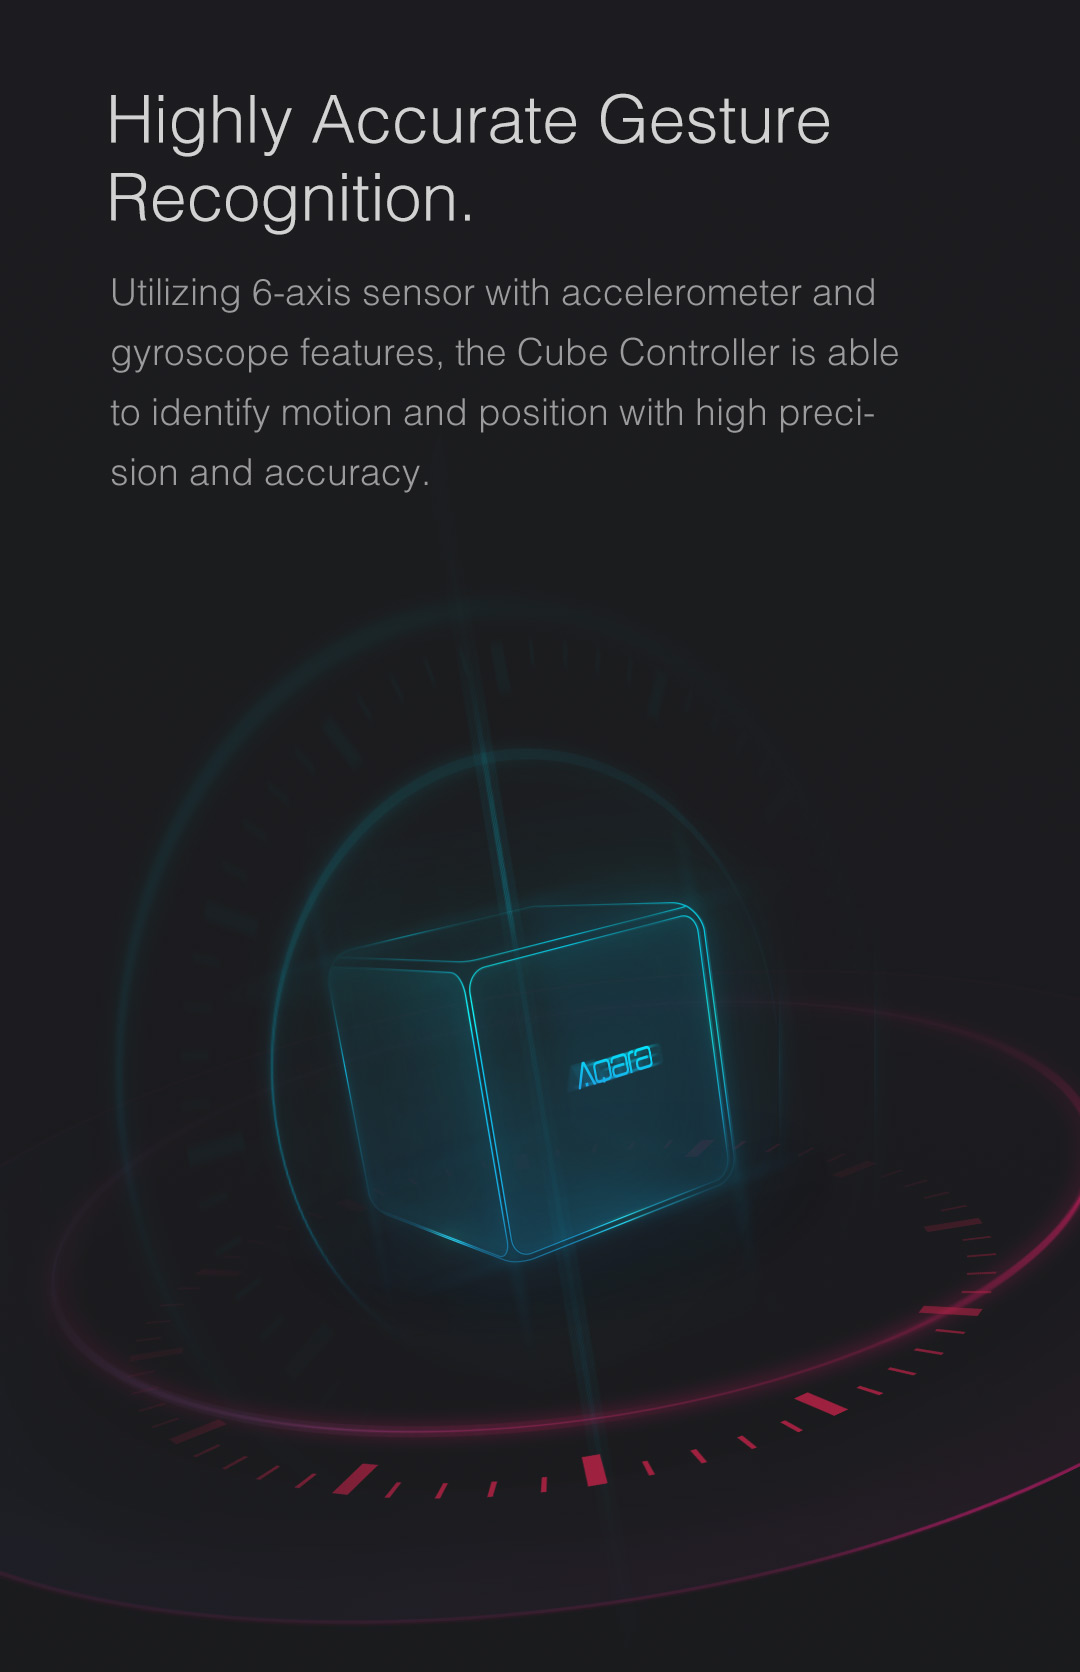 Aqara Cube Controller is able to identify motion and position with high precision and accuracy